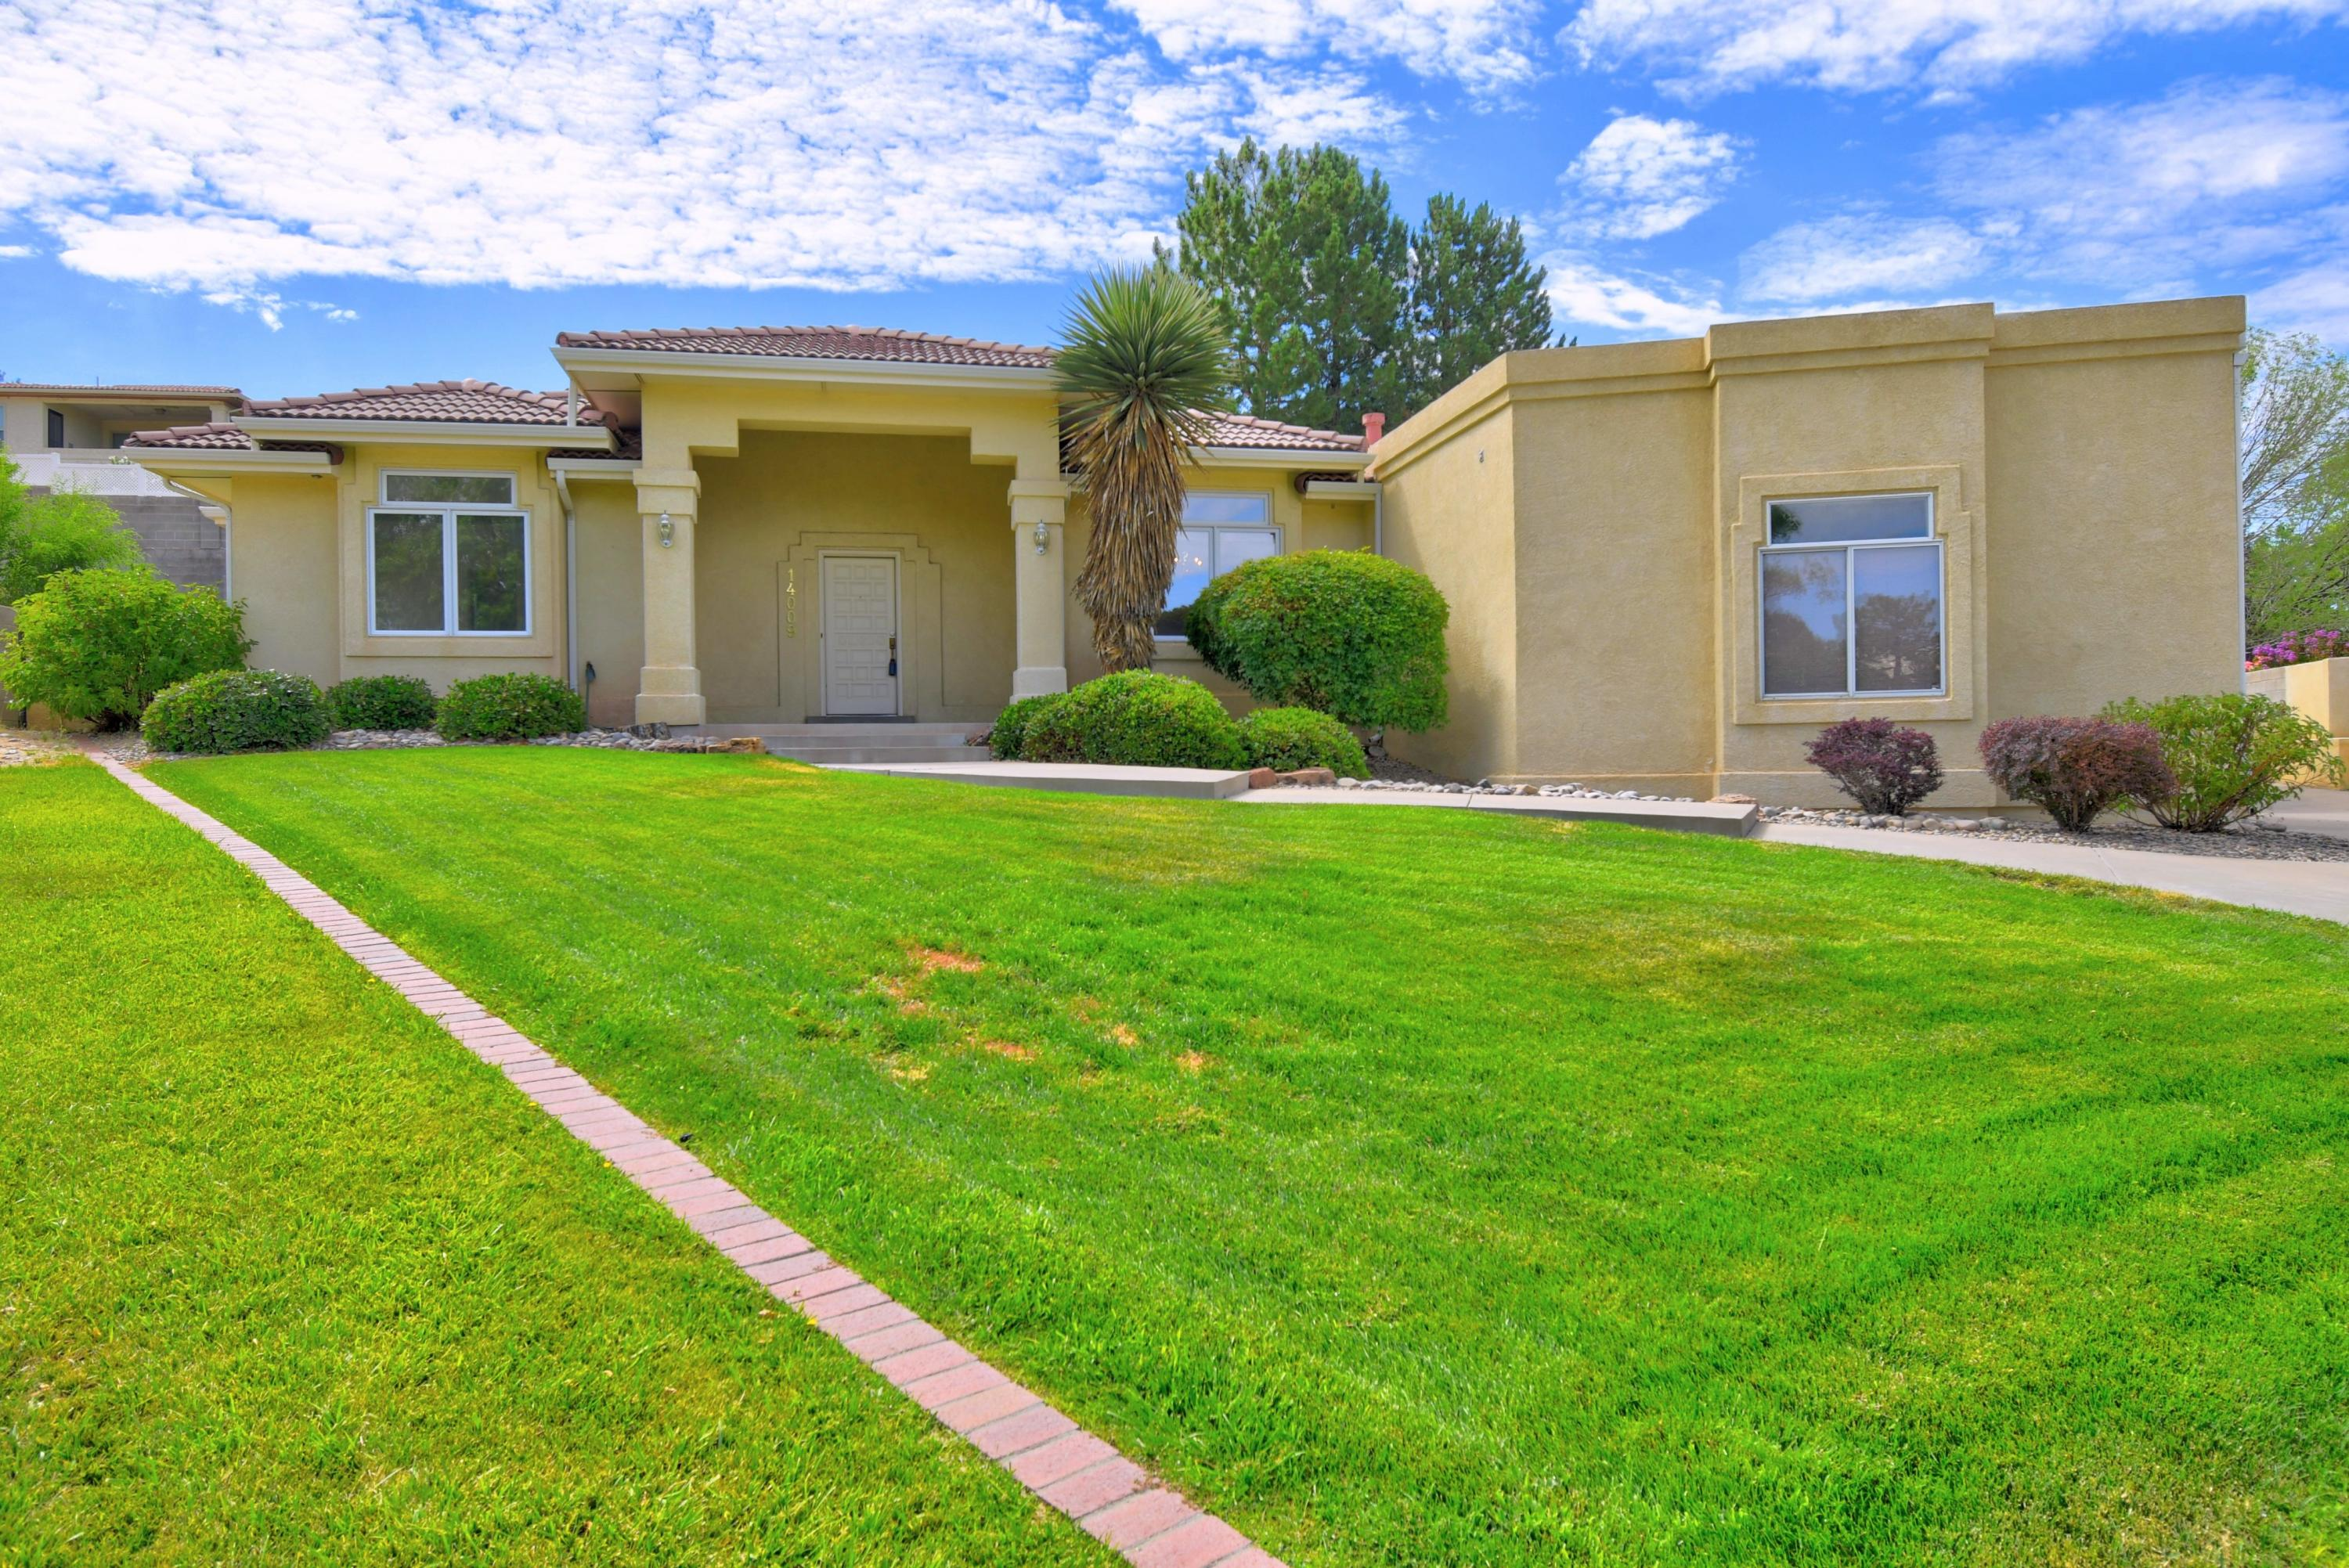 14009 MUNDO Court NE Property Photo - Albuquerque, NM real estate listing